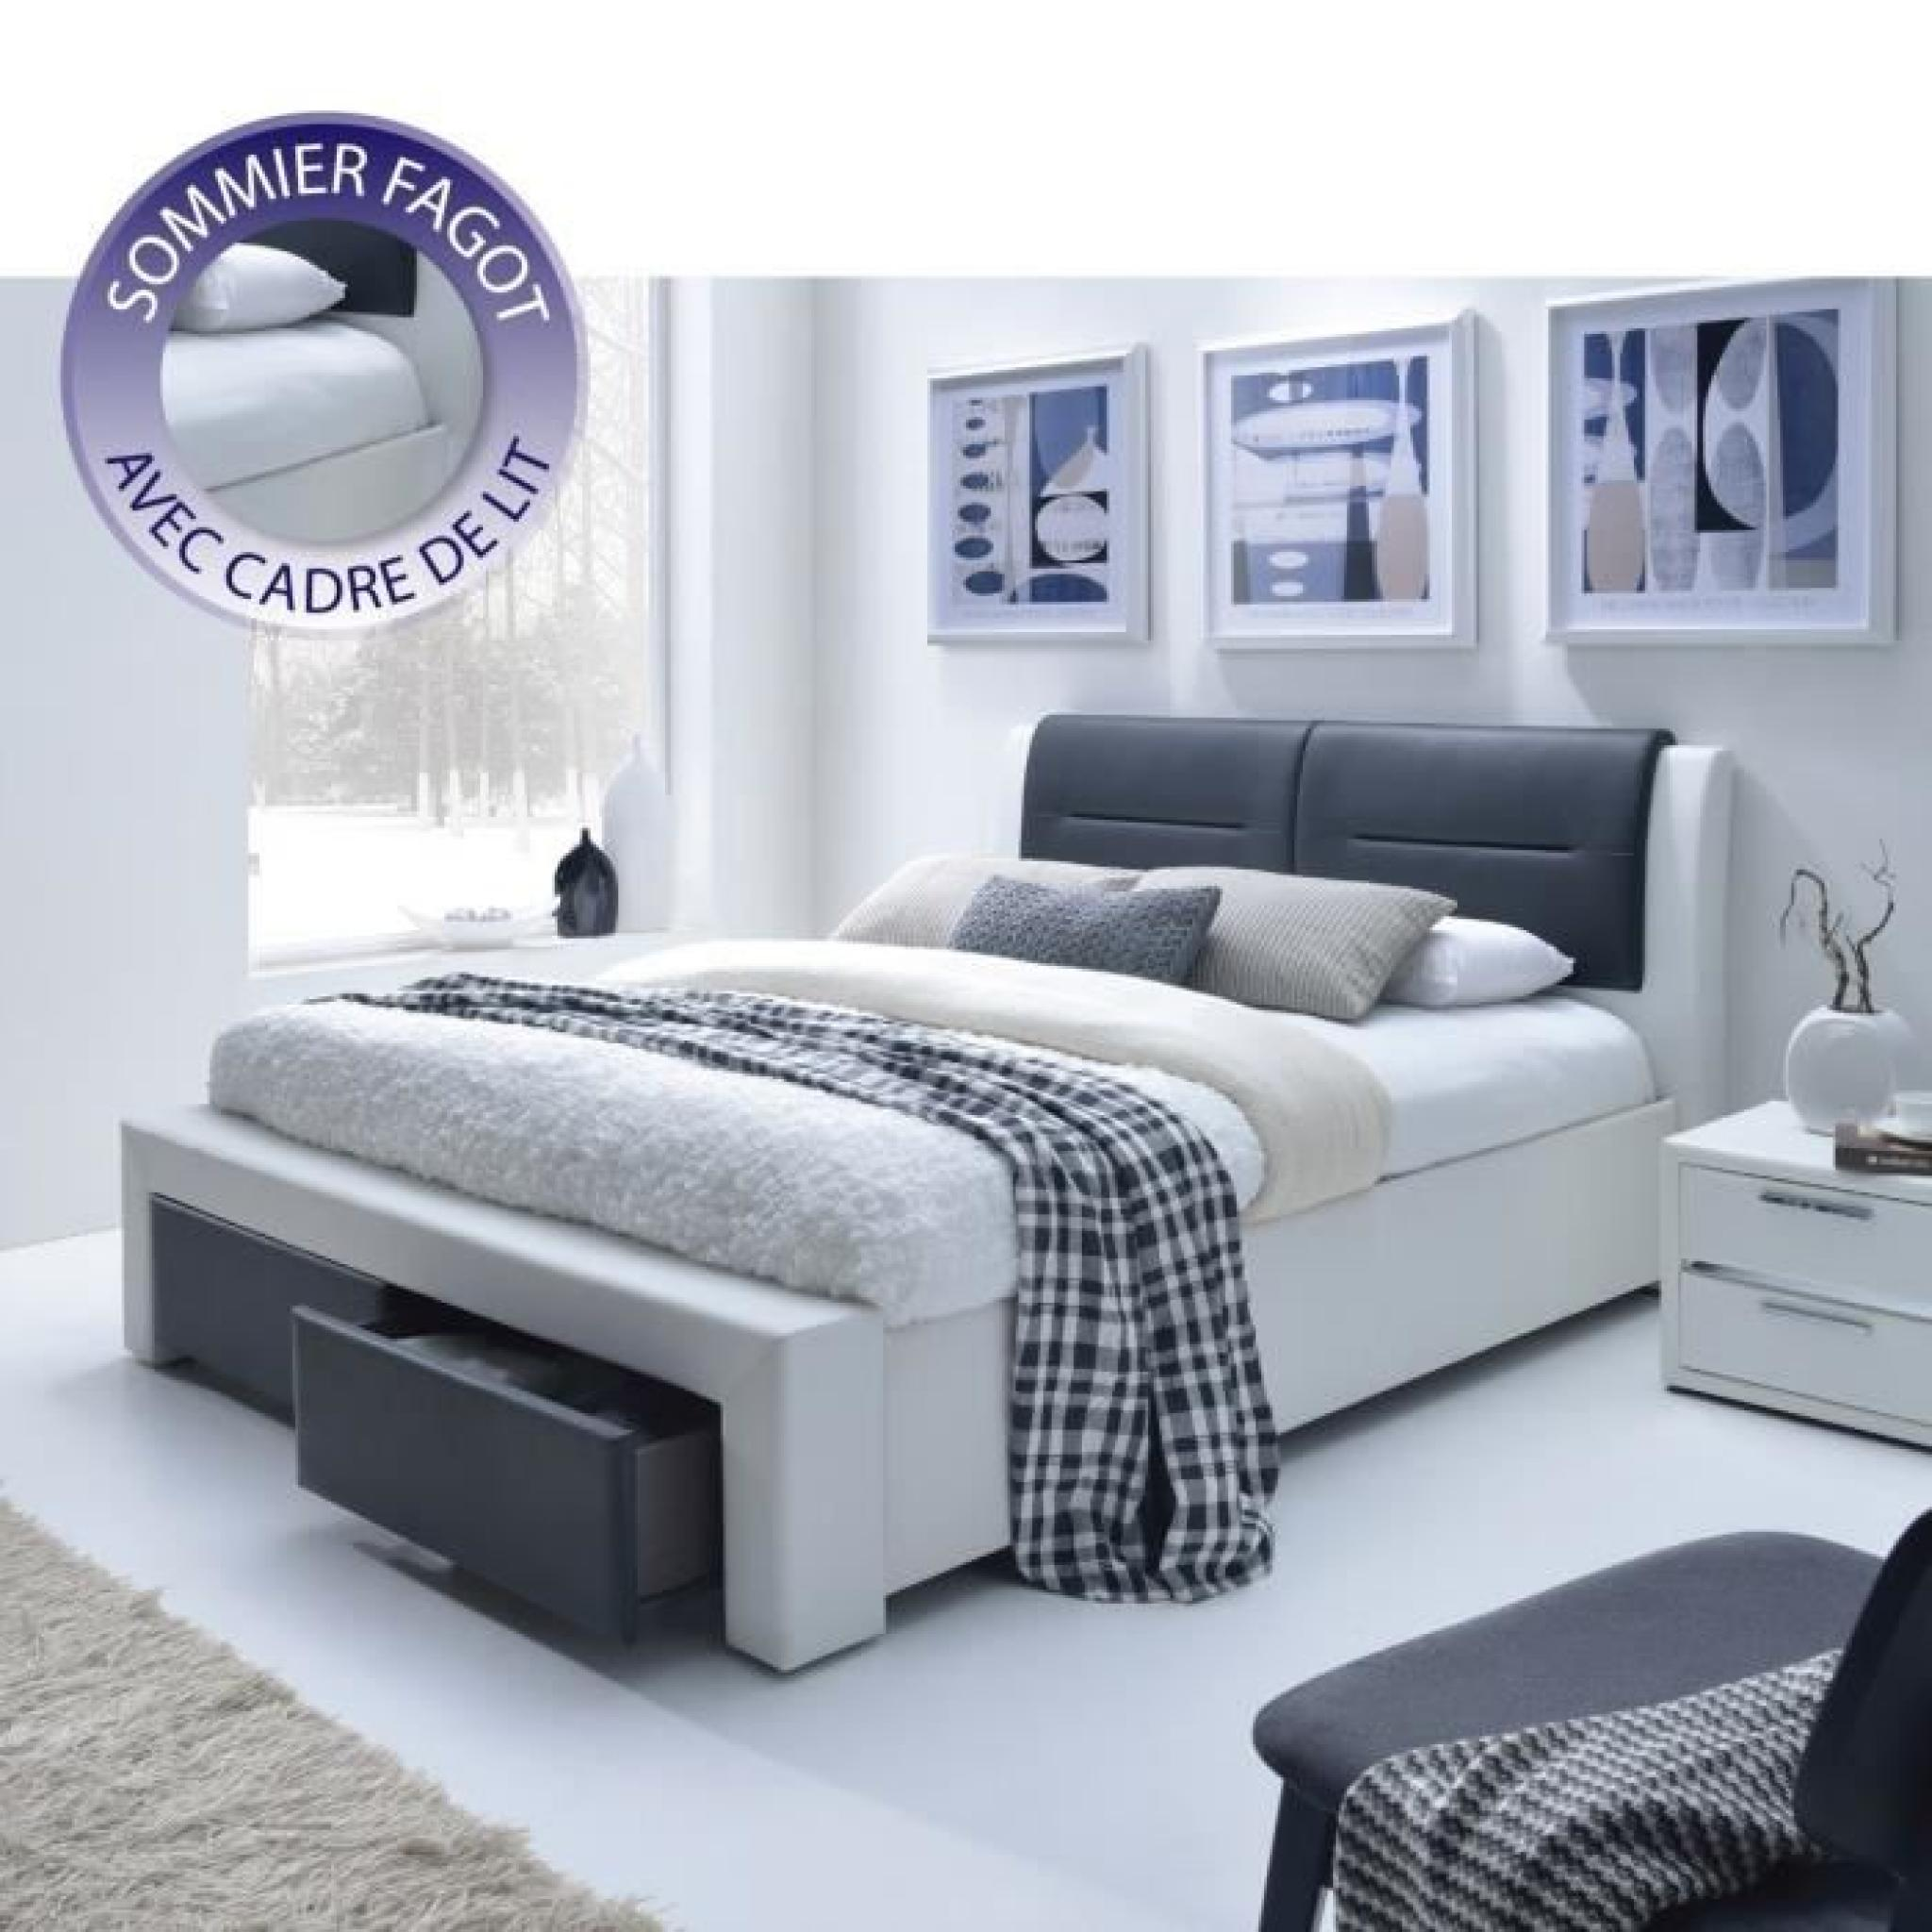 imagina lit adulte en simili 160x200cm sommier inclus noir et blanc achat vente lit pas. Black Bedroom Furniture Sets. Home Design Ideas